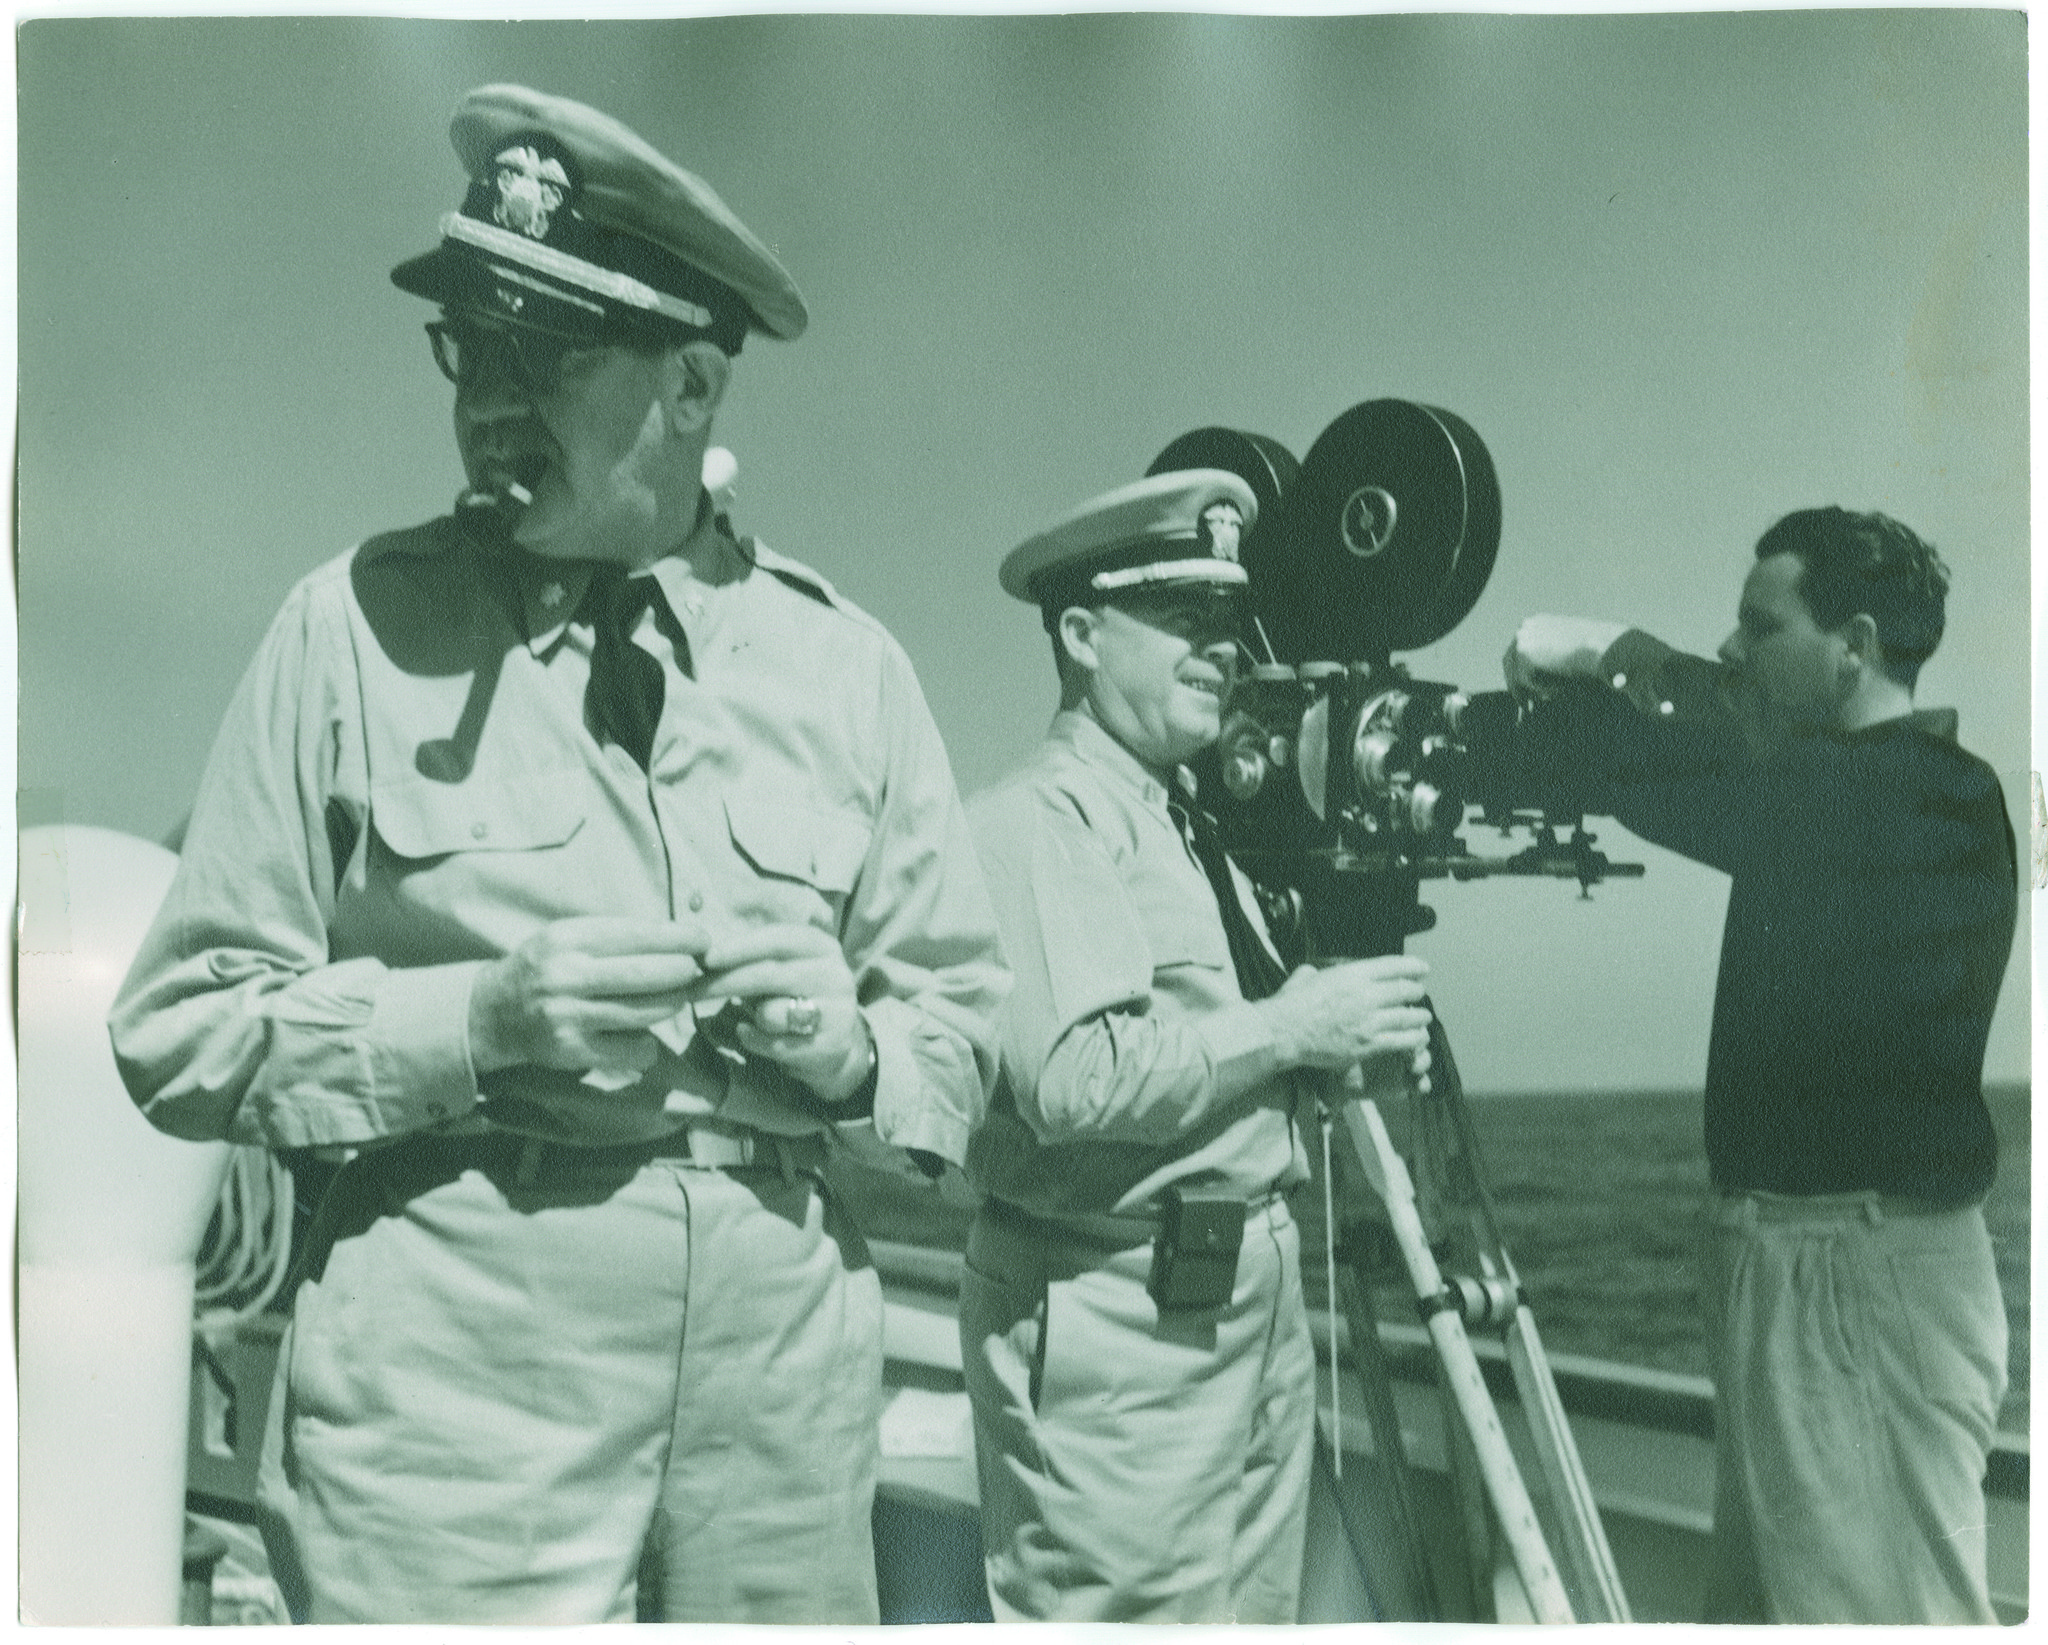 John Ford, left, next to his cameraman in the Pacific. The image is from